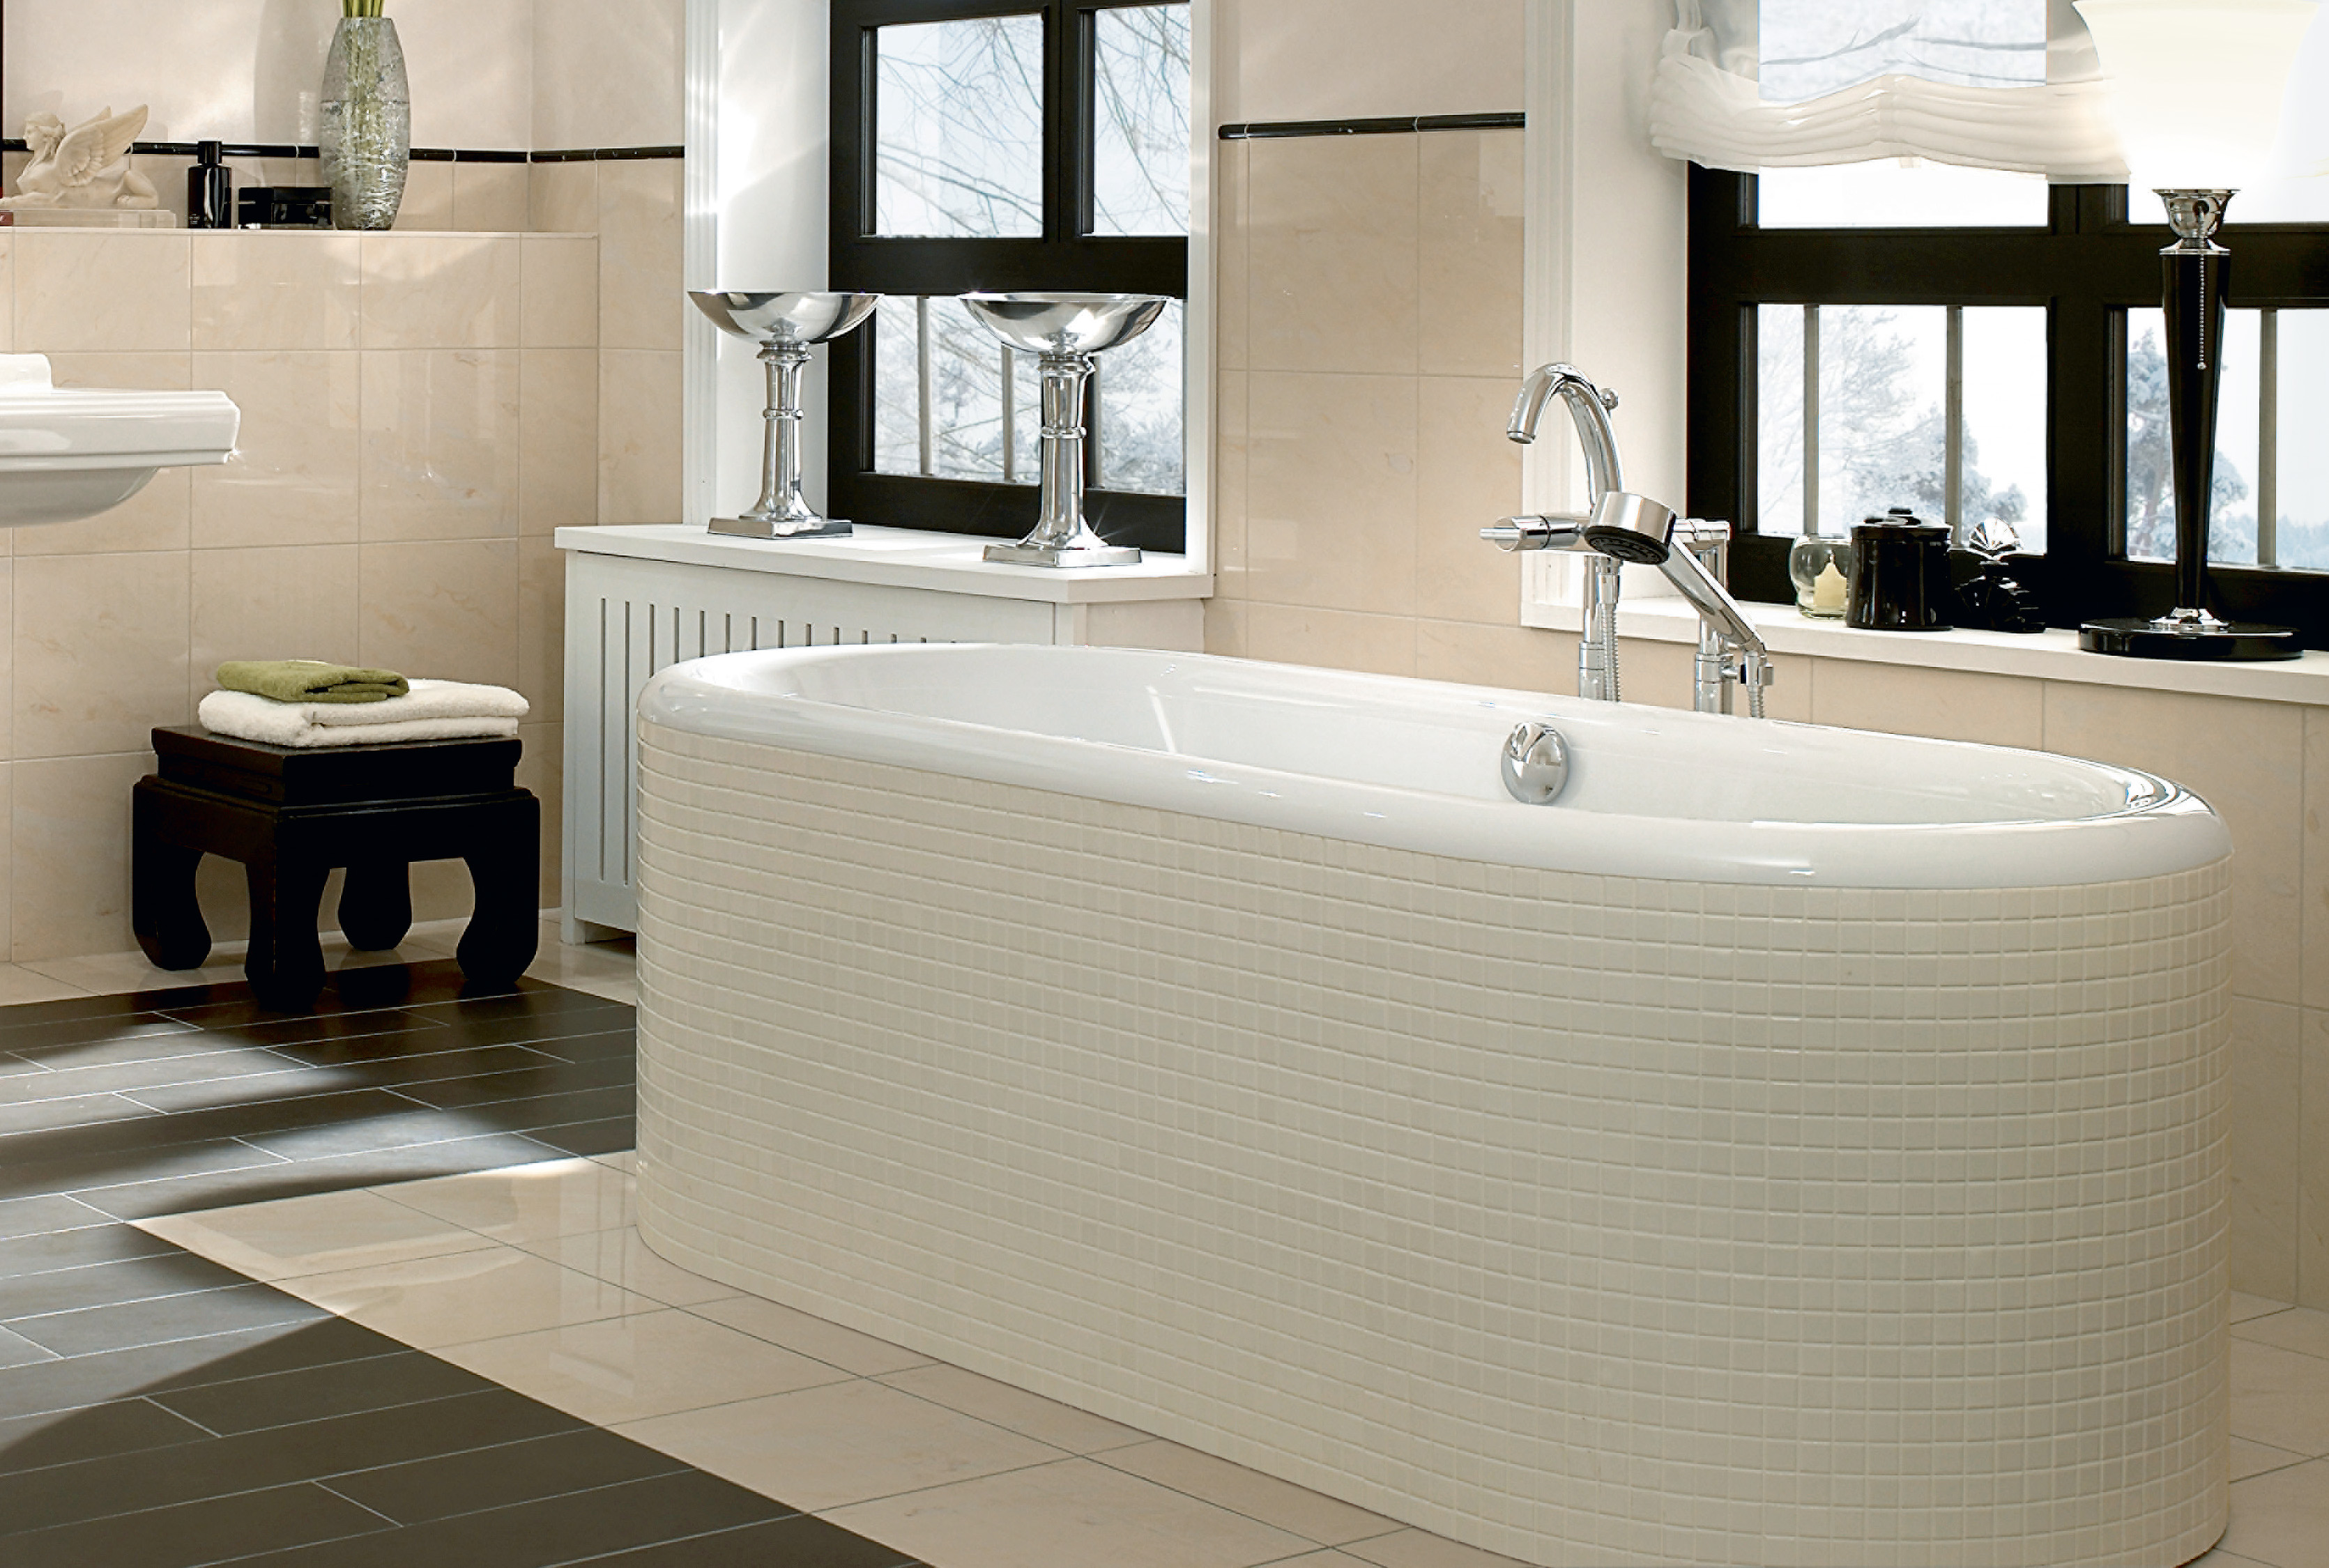 Nexus Bath, Baths, Oval baths